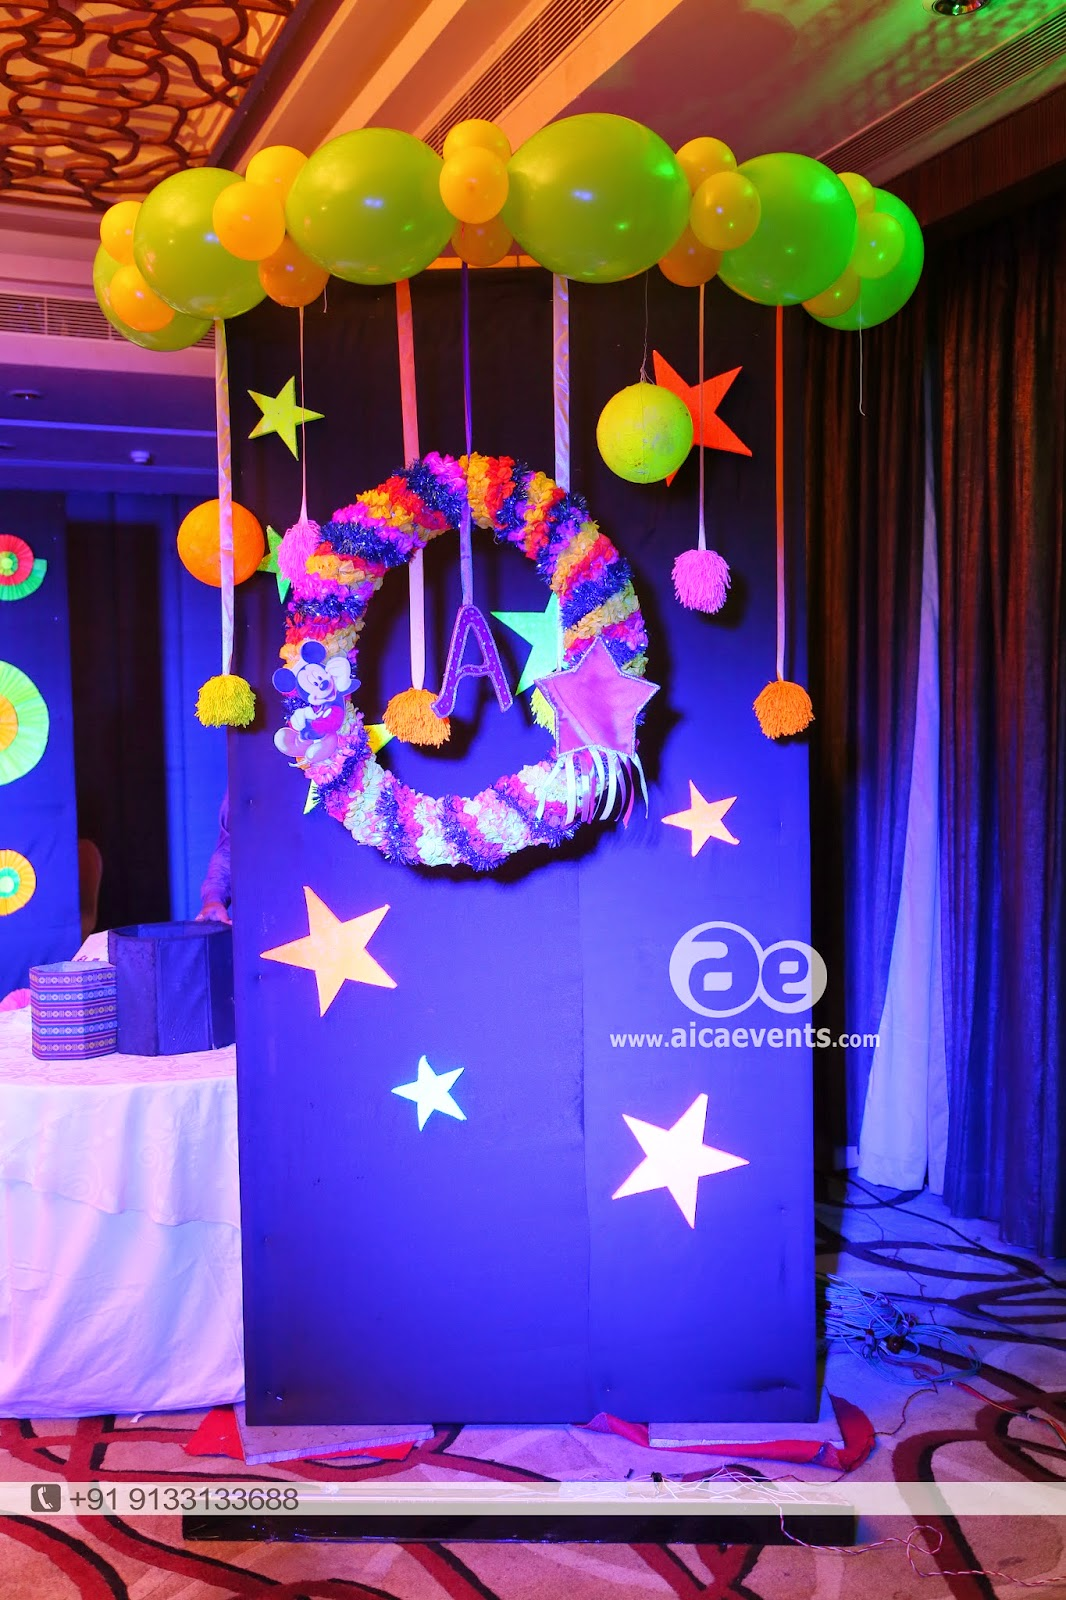 Outstanding Balloon Walls Decorations Images Wall Art Ideas